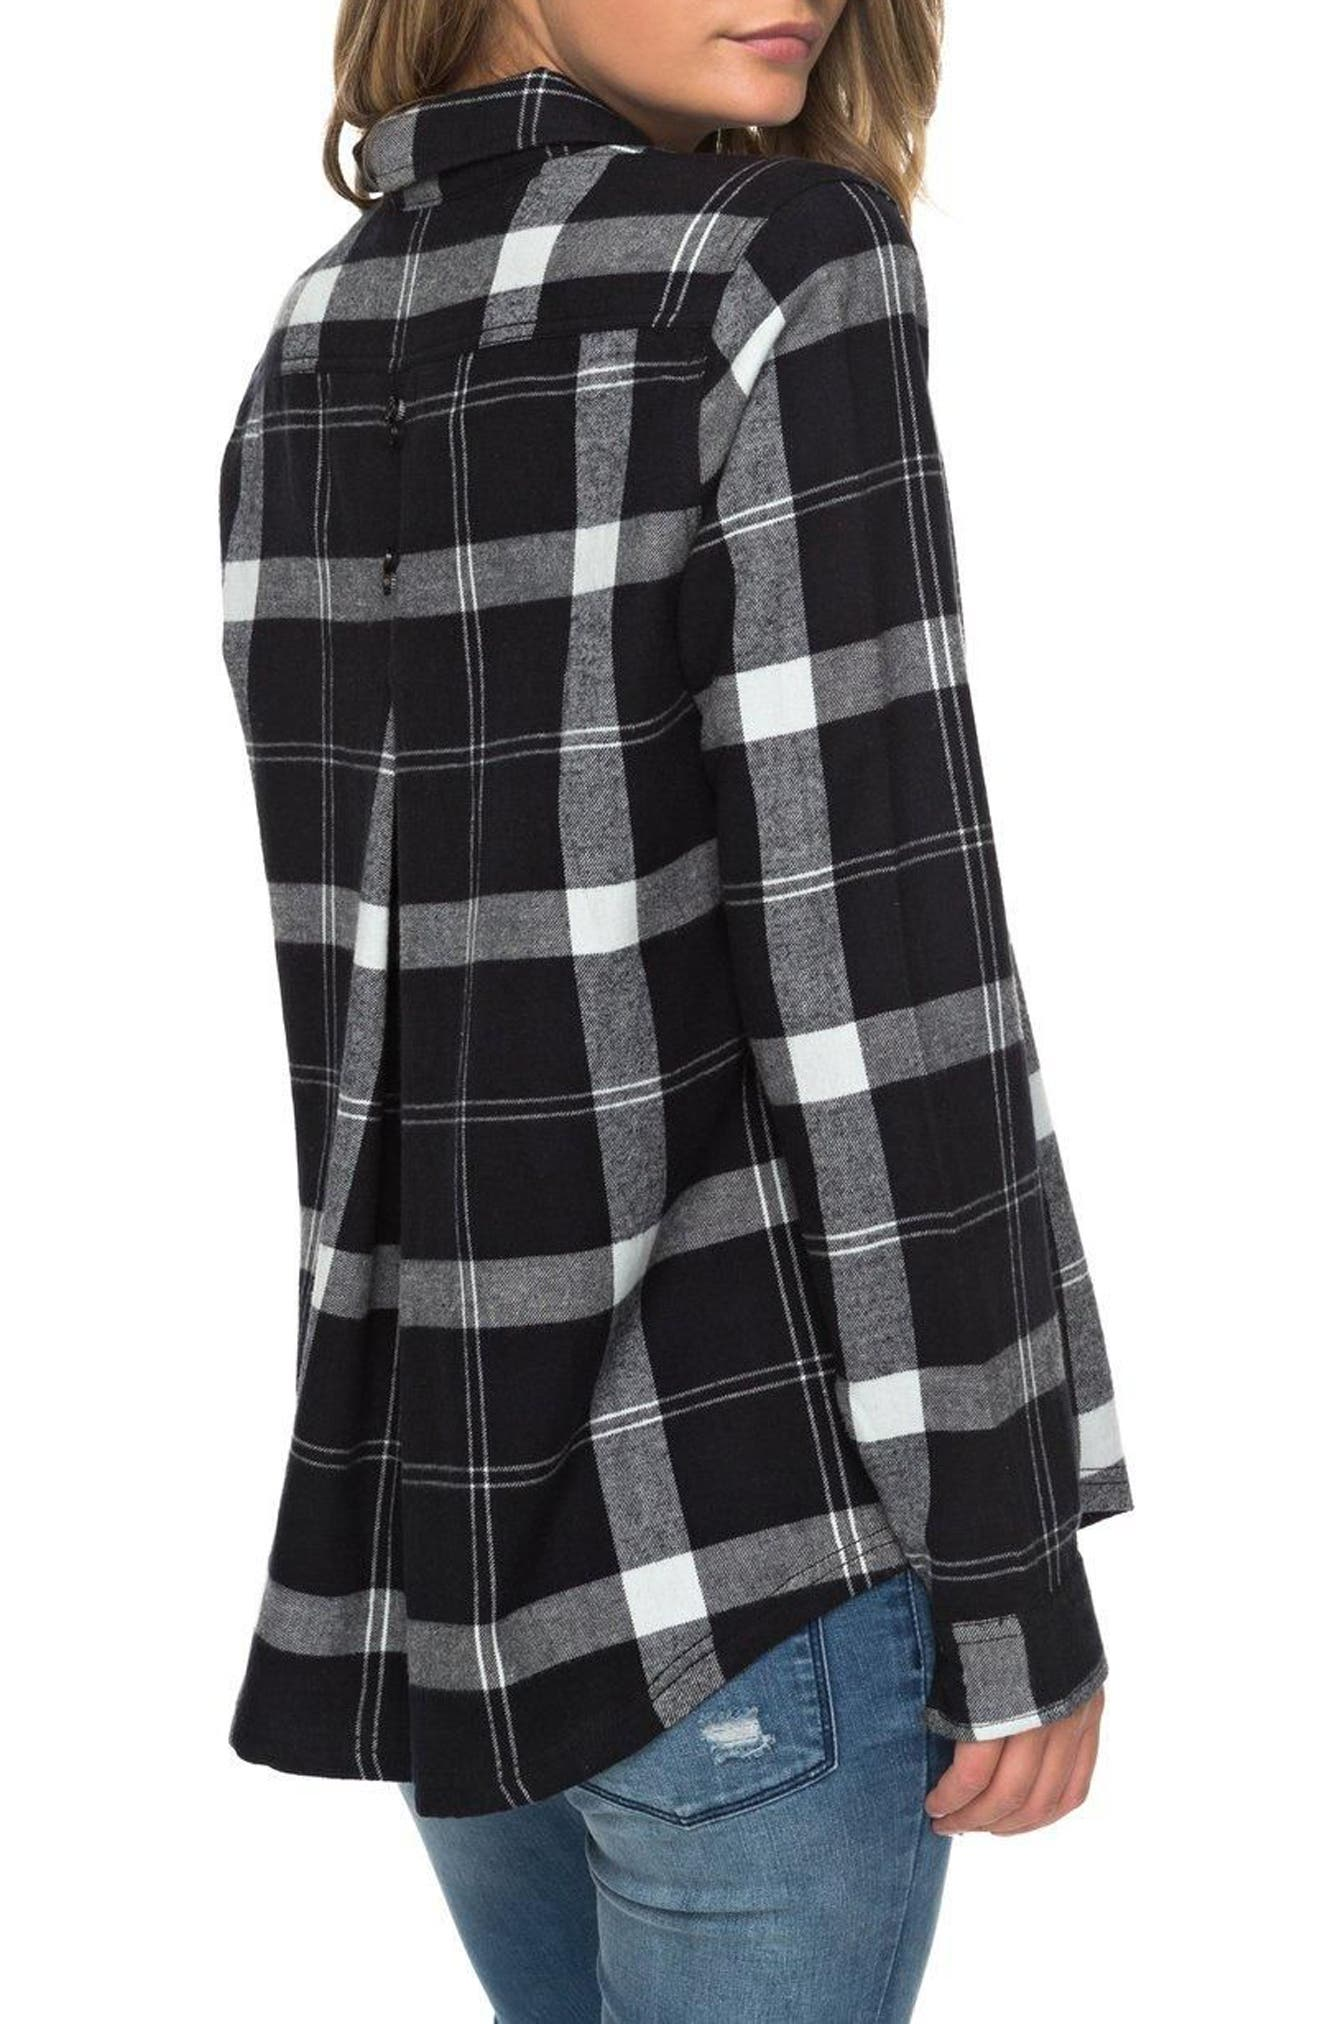 Heavy Feelings Plaid Cotton Shirt,                             Alternate thumbnail 3, color,                             Checked Plaid Combo Anthracite